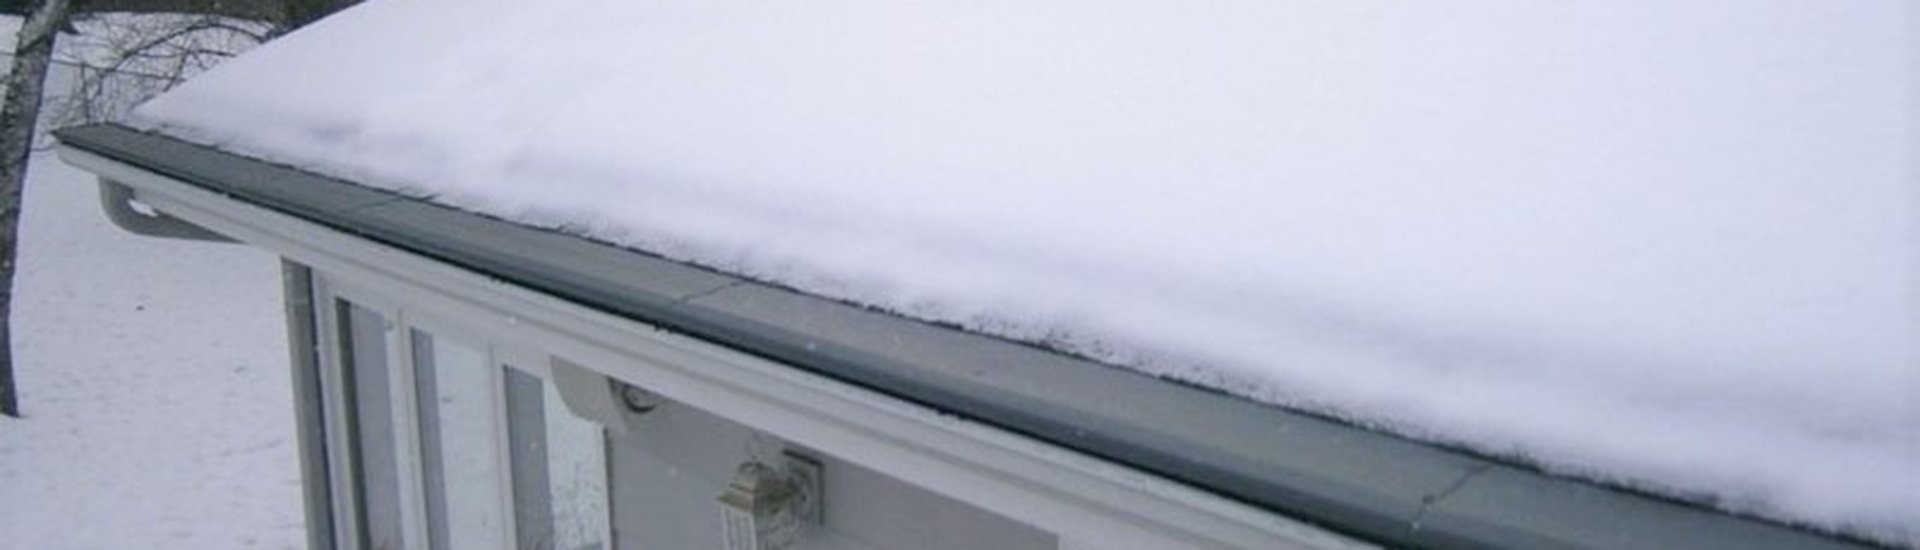 Heated Gutters